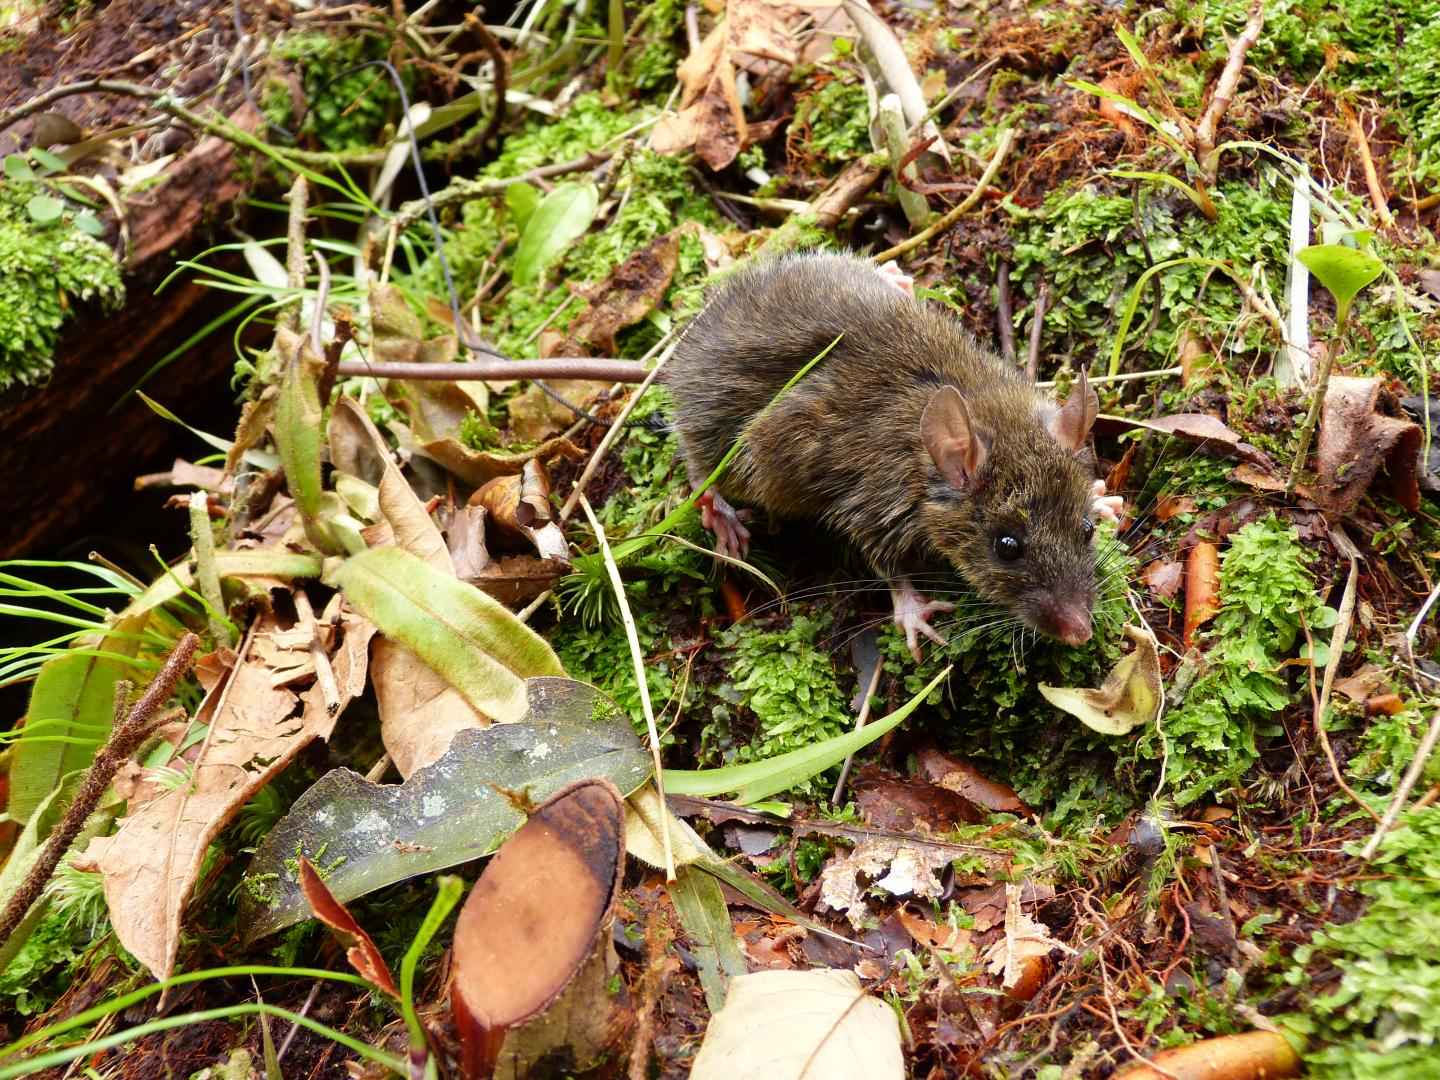 Worm-Eating Mouse